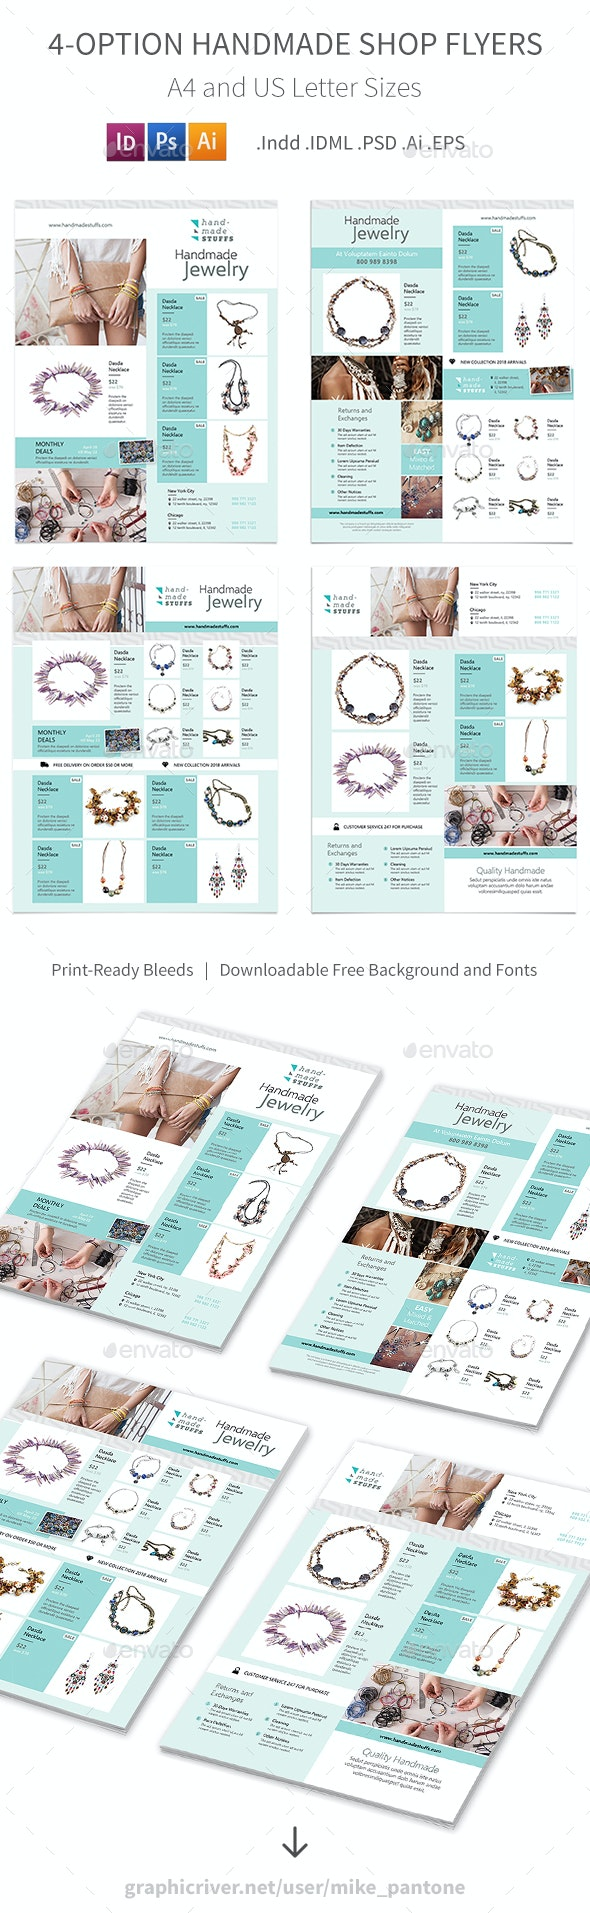 Handmade Shop Flyers – 4 Options - Commerce Flyers